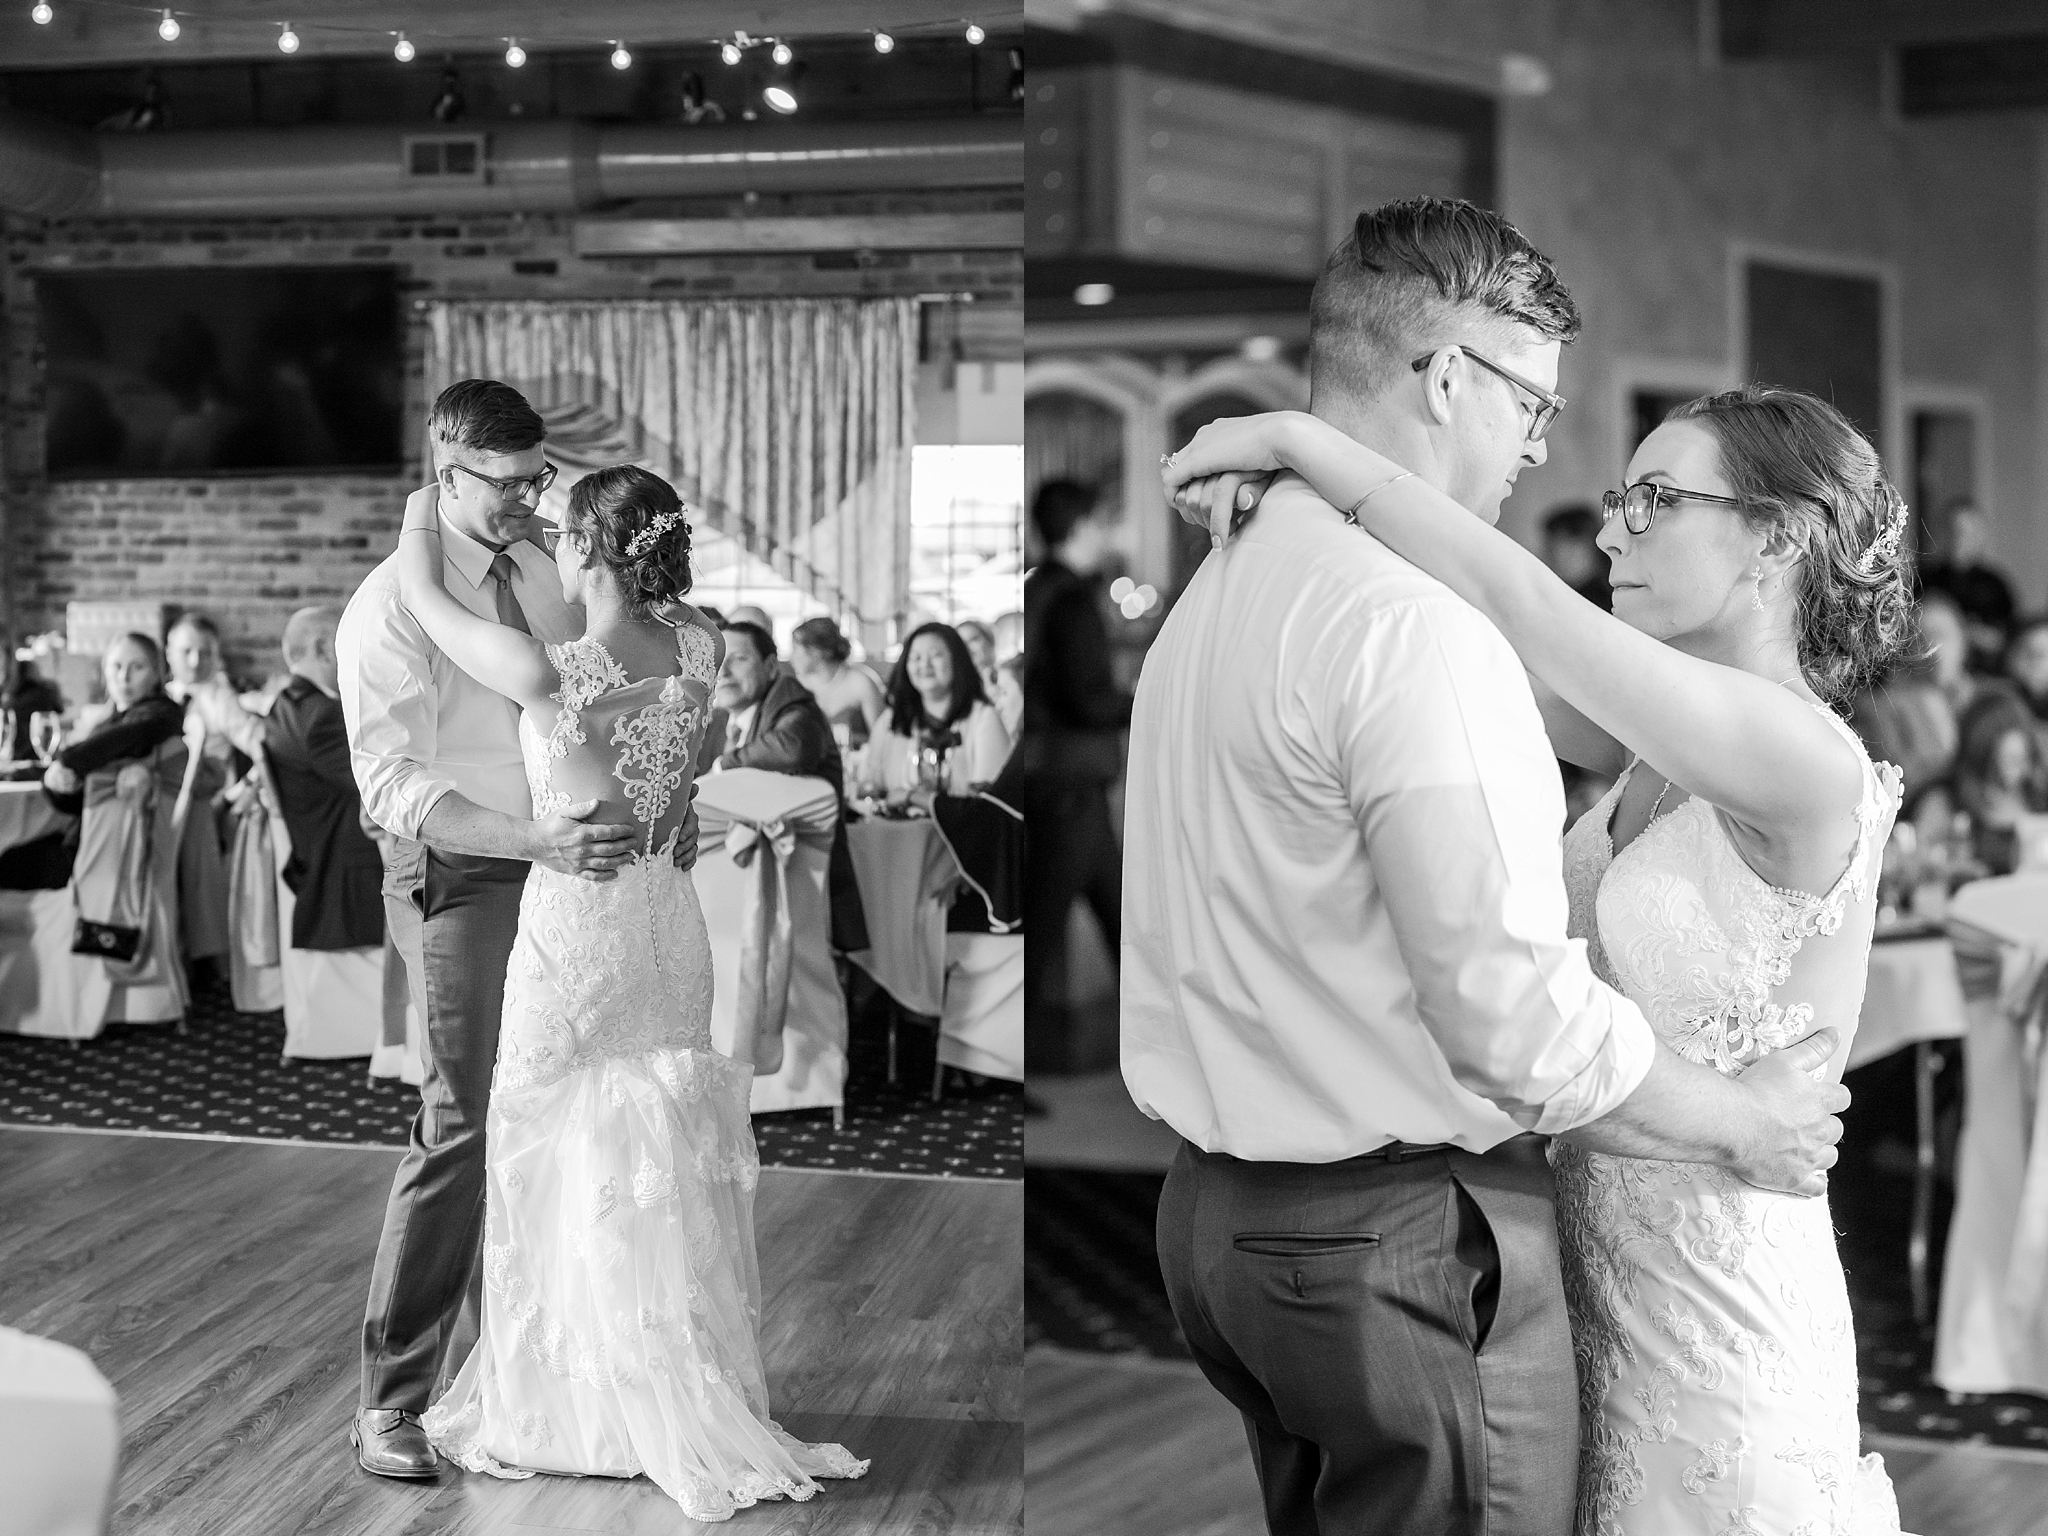 classic-timeless-candid-wedding-photos-in-grosse-ile-and-trenton-michigan-by-courtney-carolyn-photography_0071.jpg